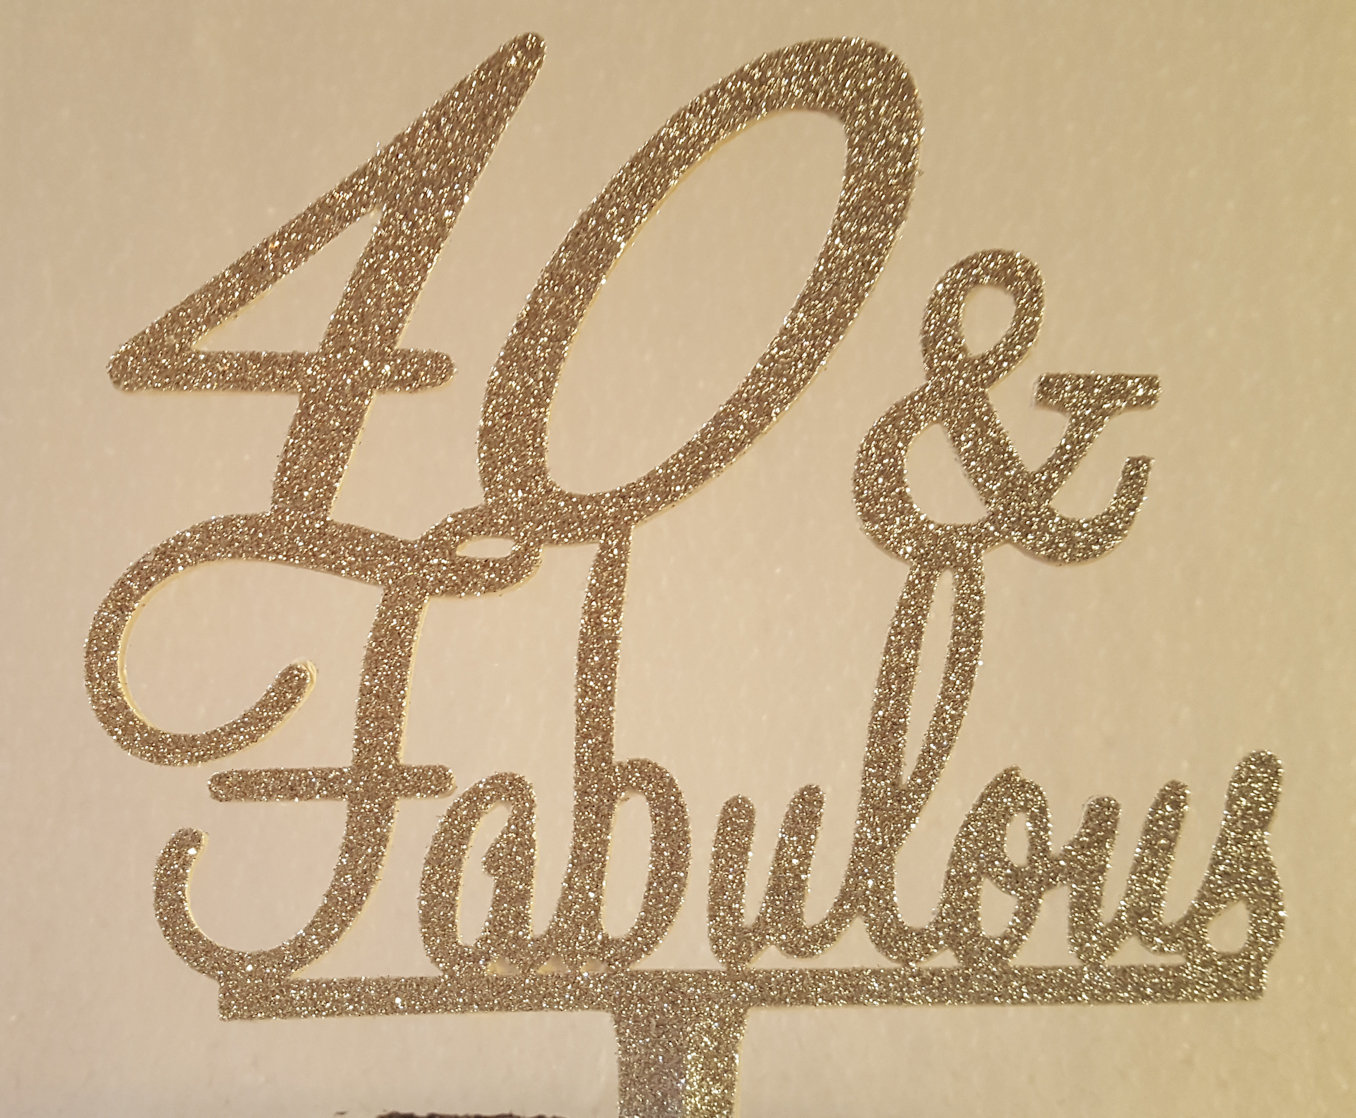 40 & Fabulous cake card topper